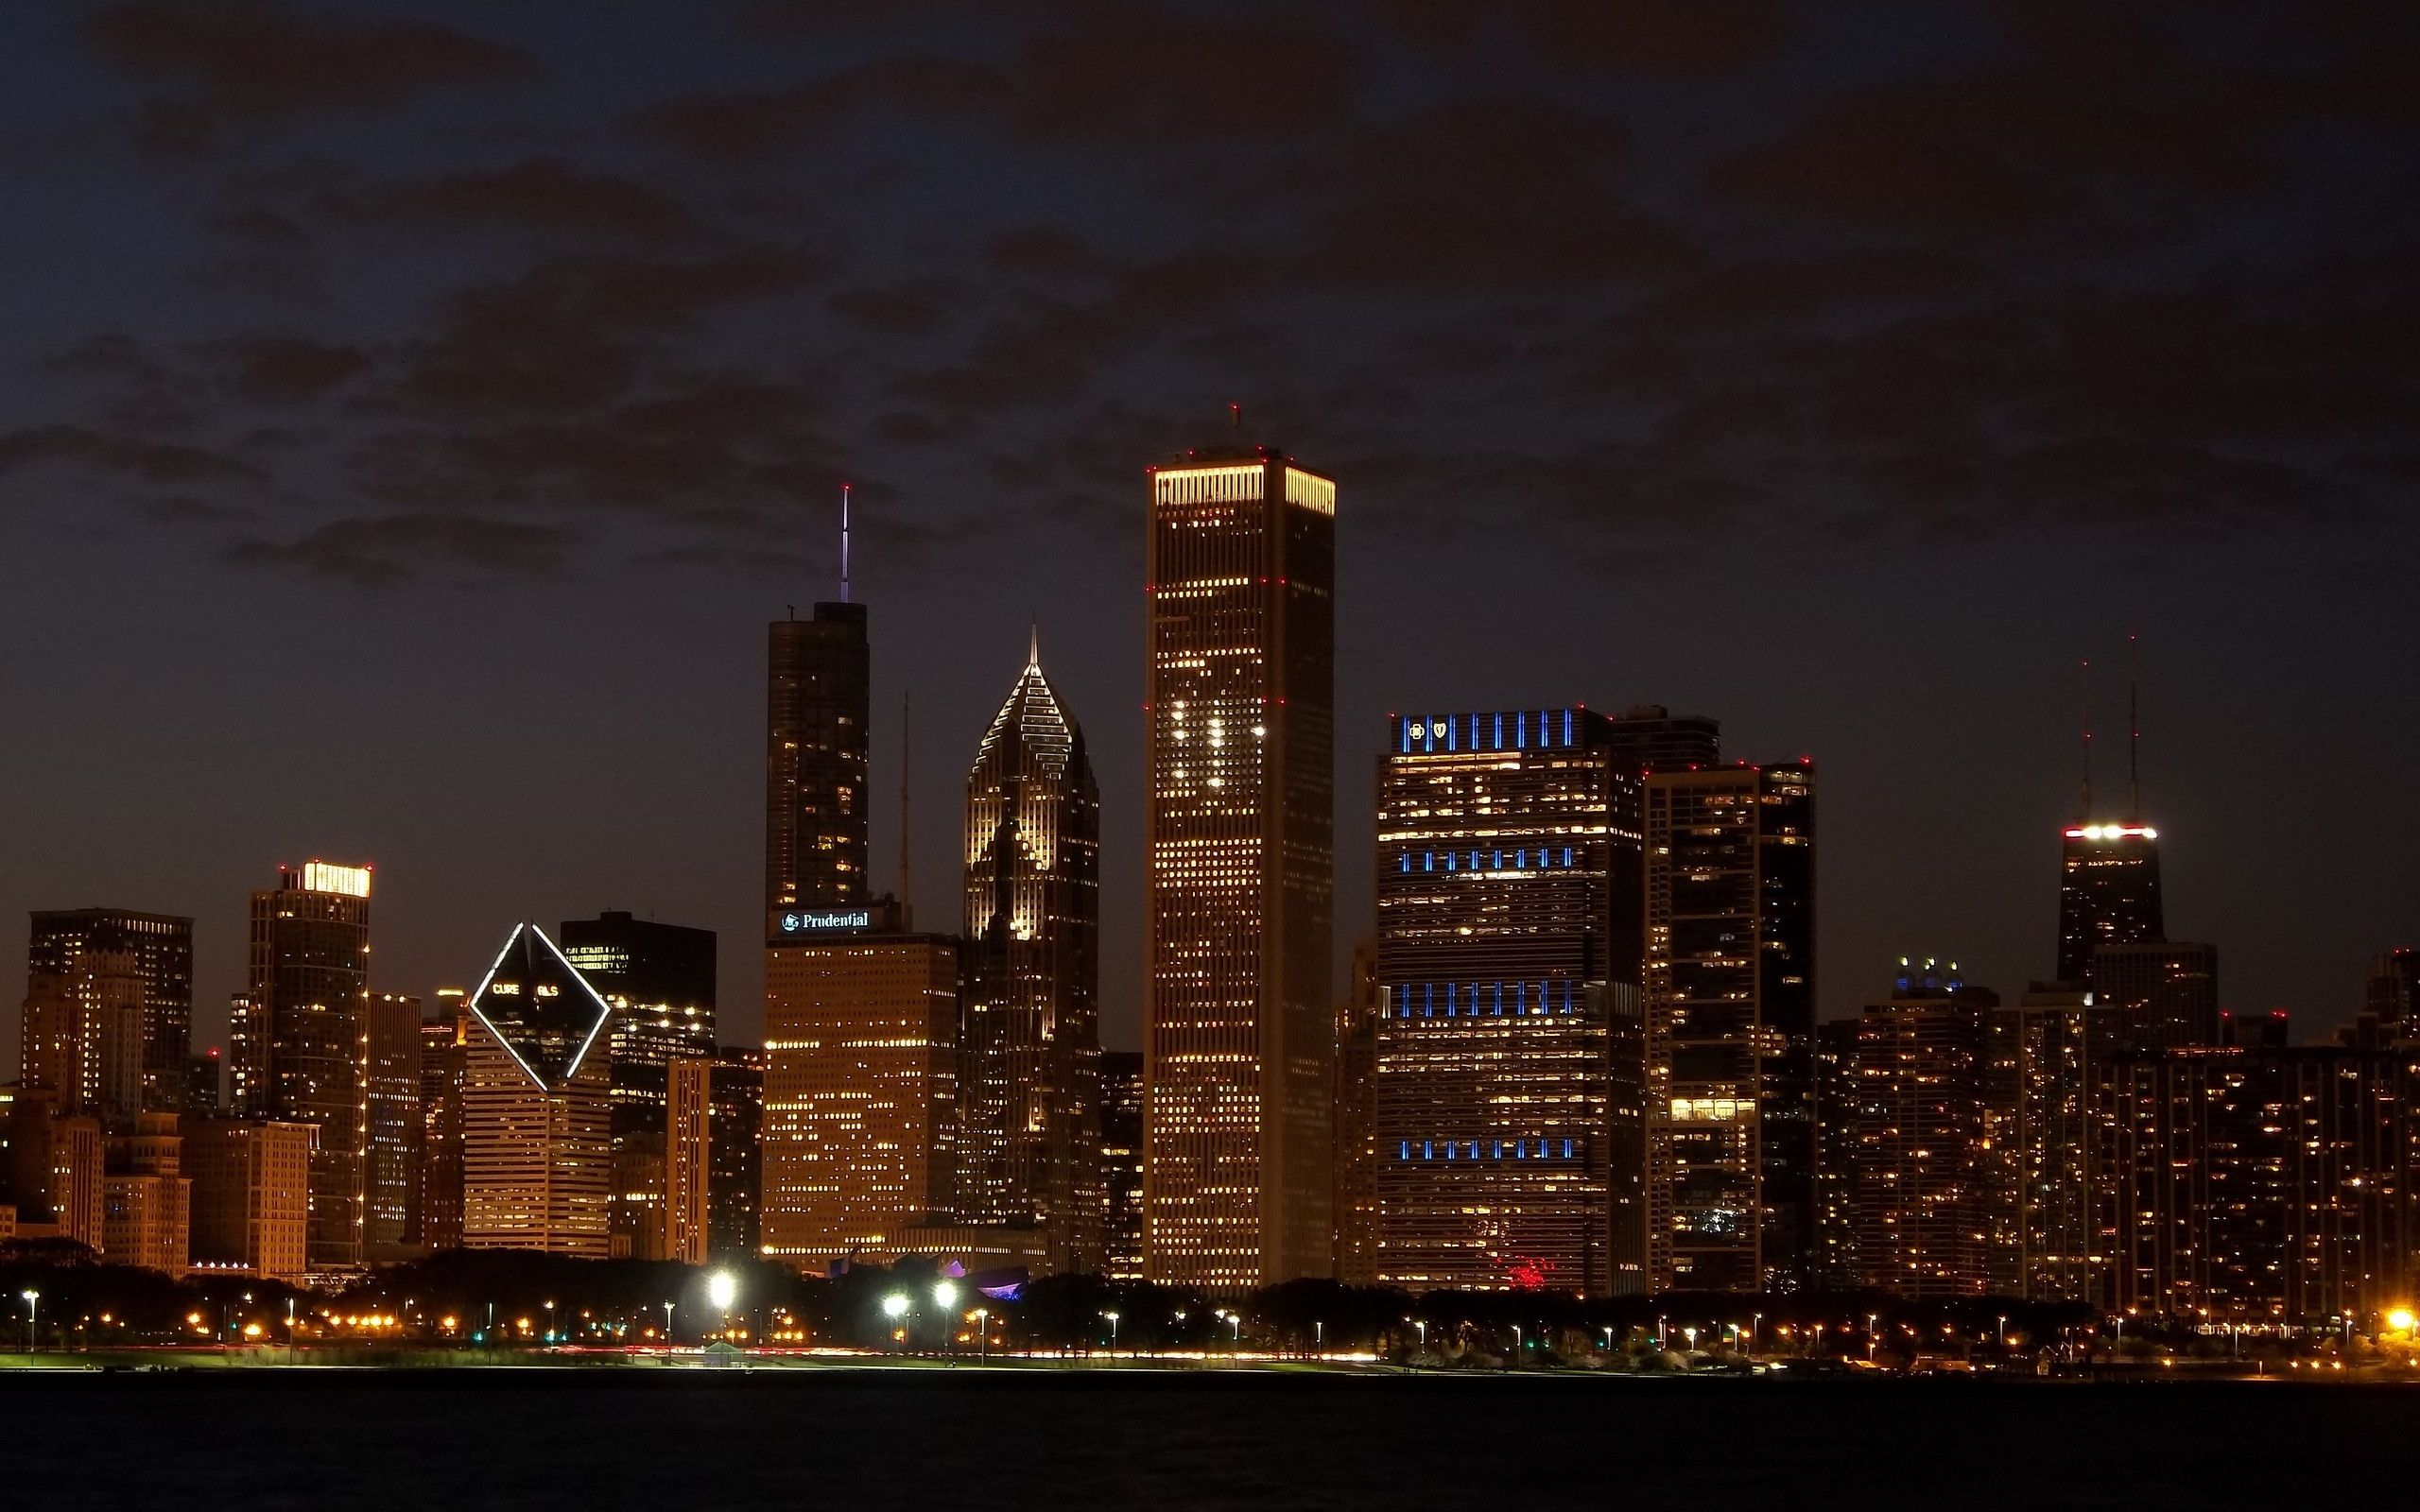 Chicago At Night Wallpaper: Chicago Skyline Wallpaper For Computer